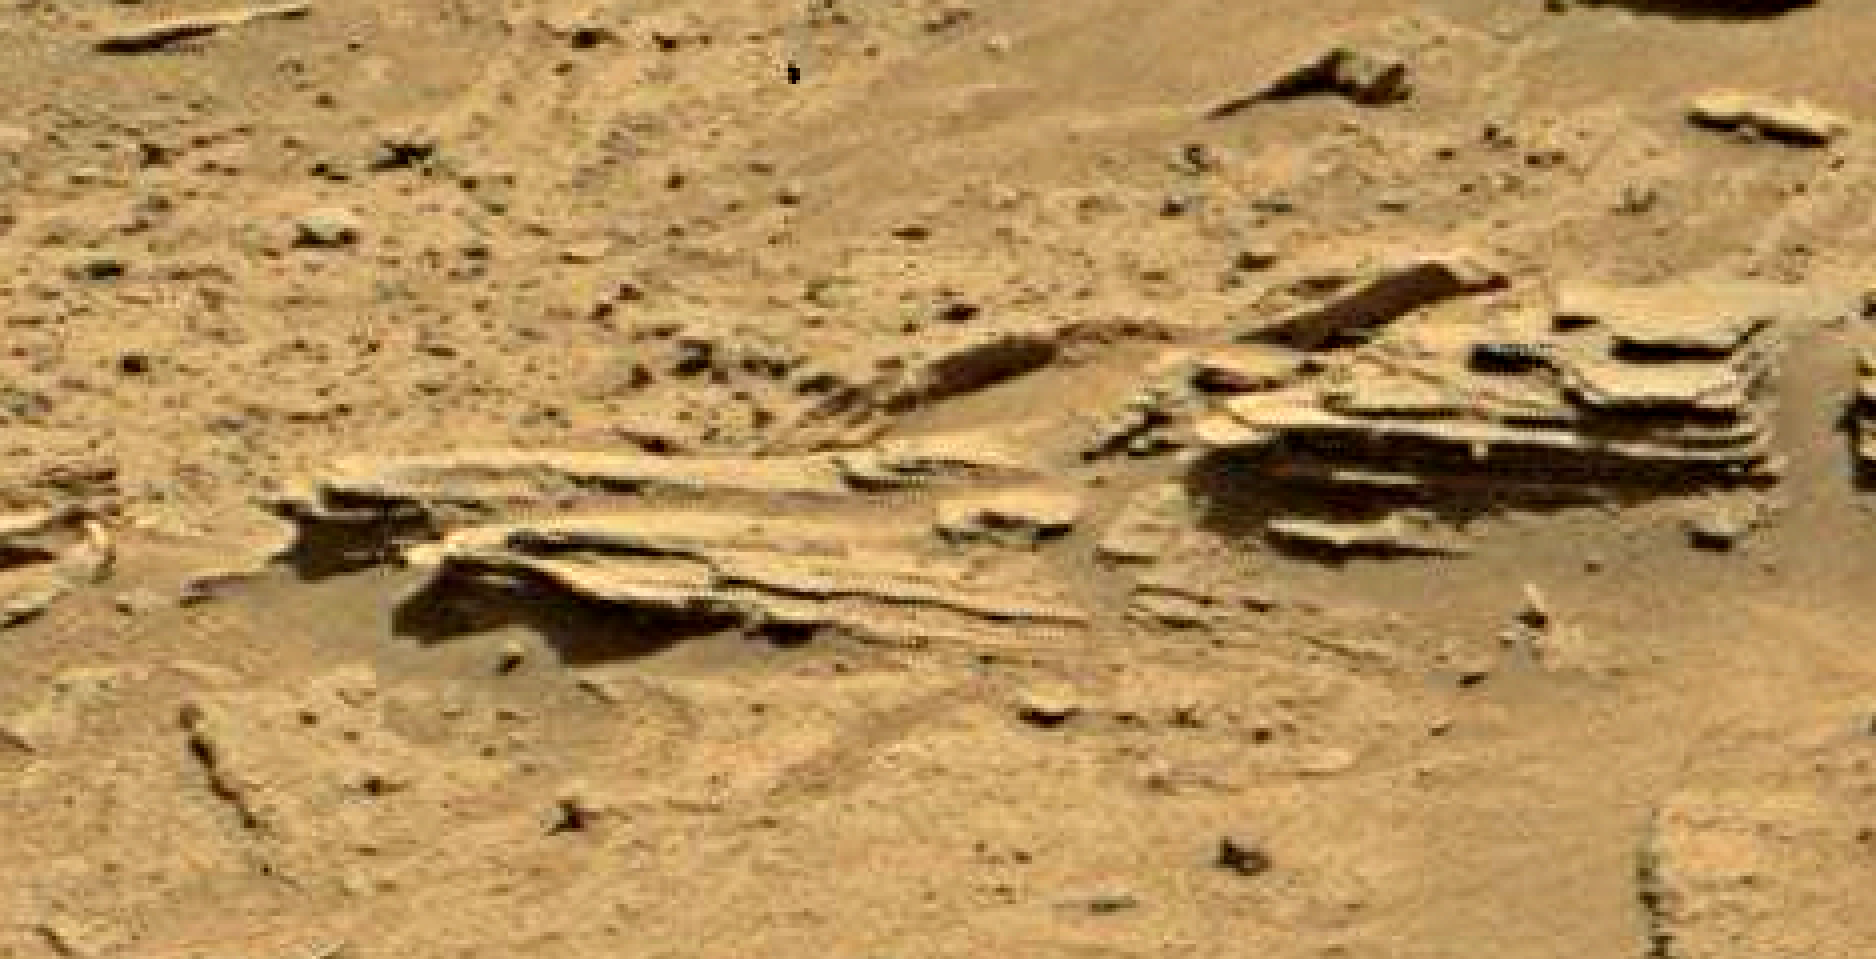 mars sol 1346 anomaly-artifacts 14 was life on mars